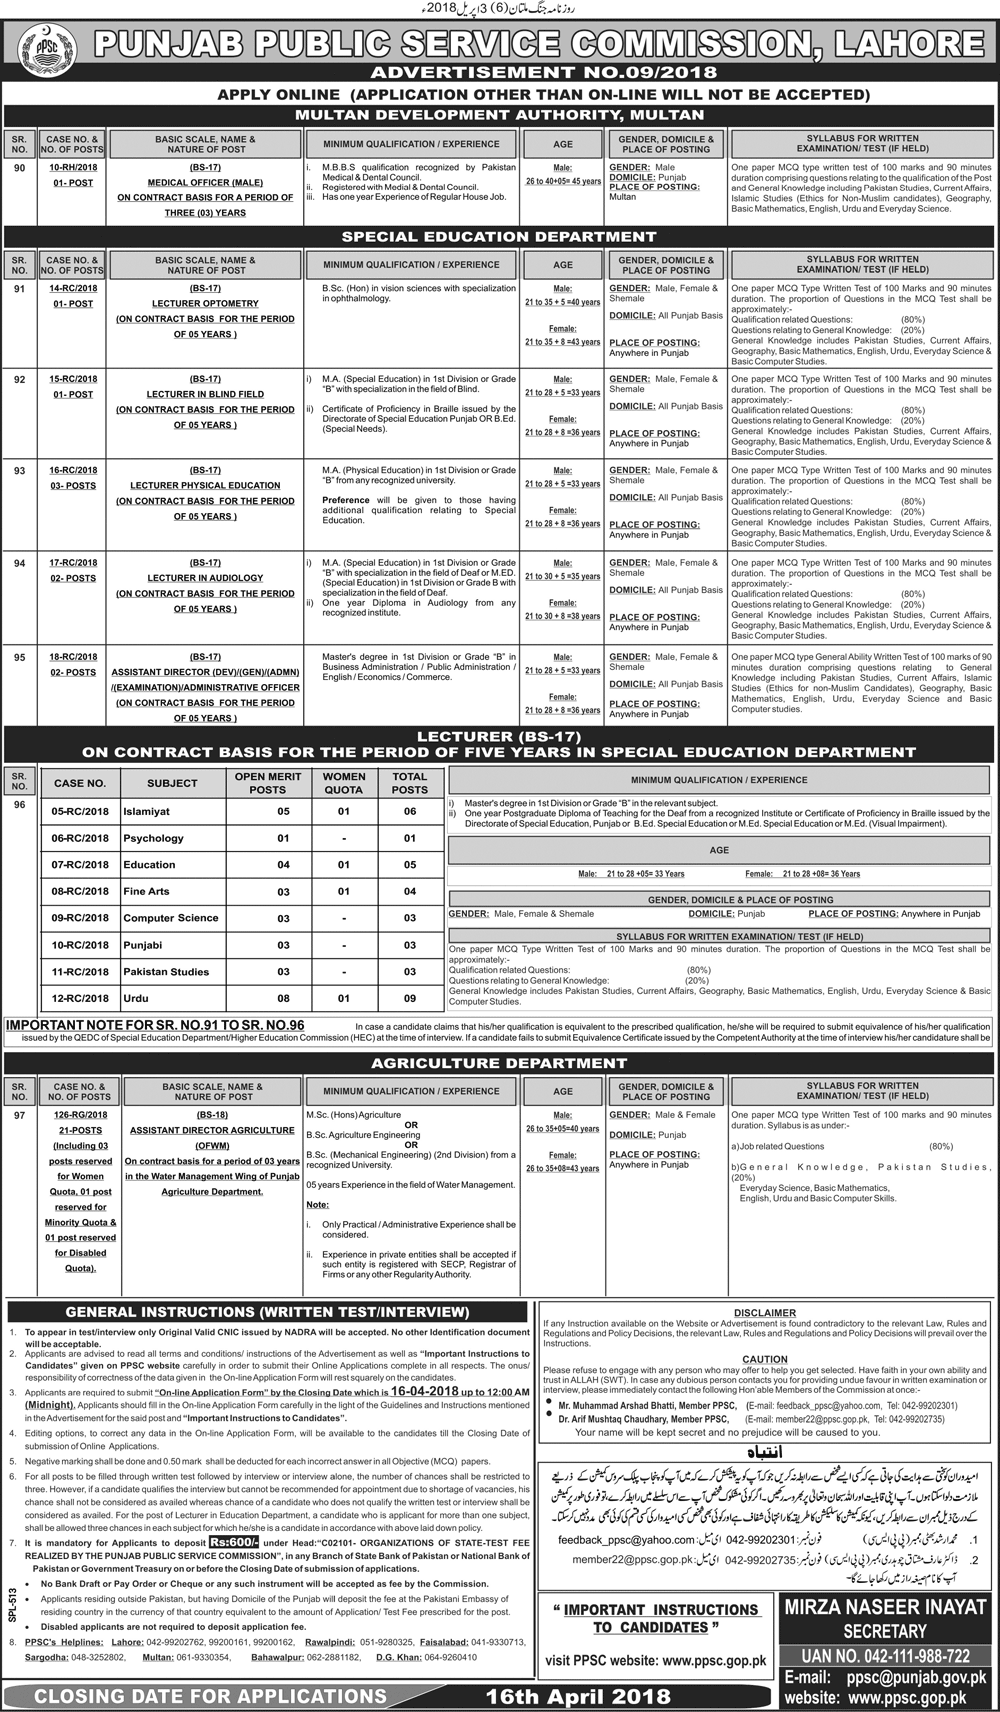 Special Education Department Lecturers Job Through PPSC 2019 Job